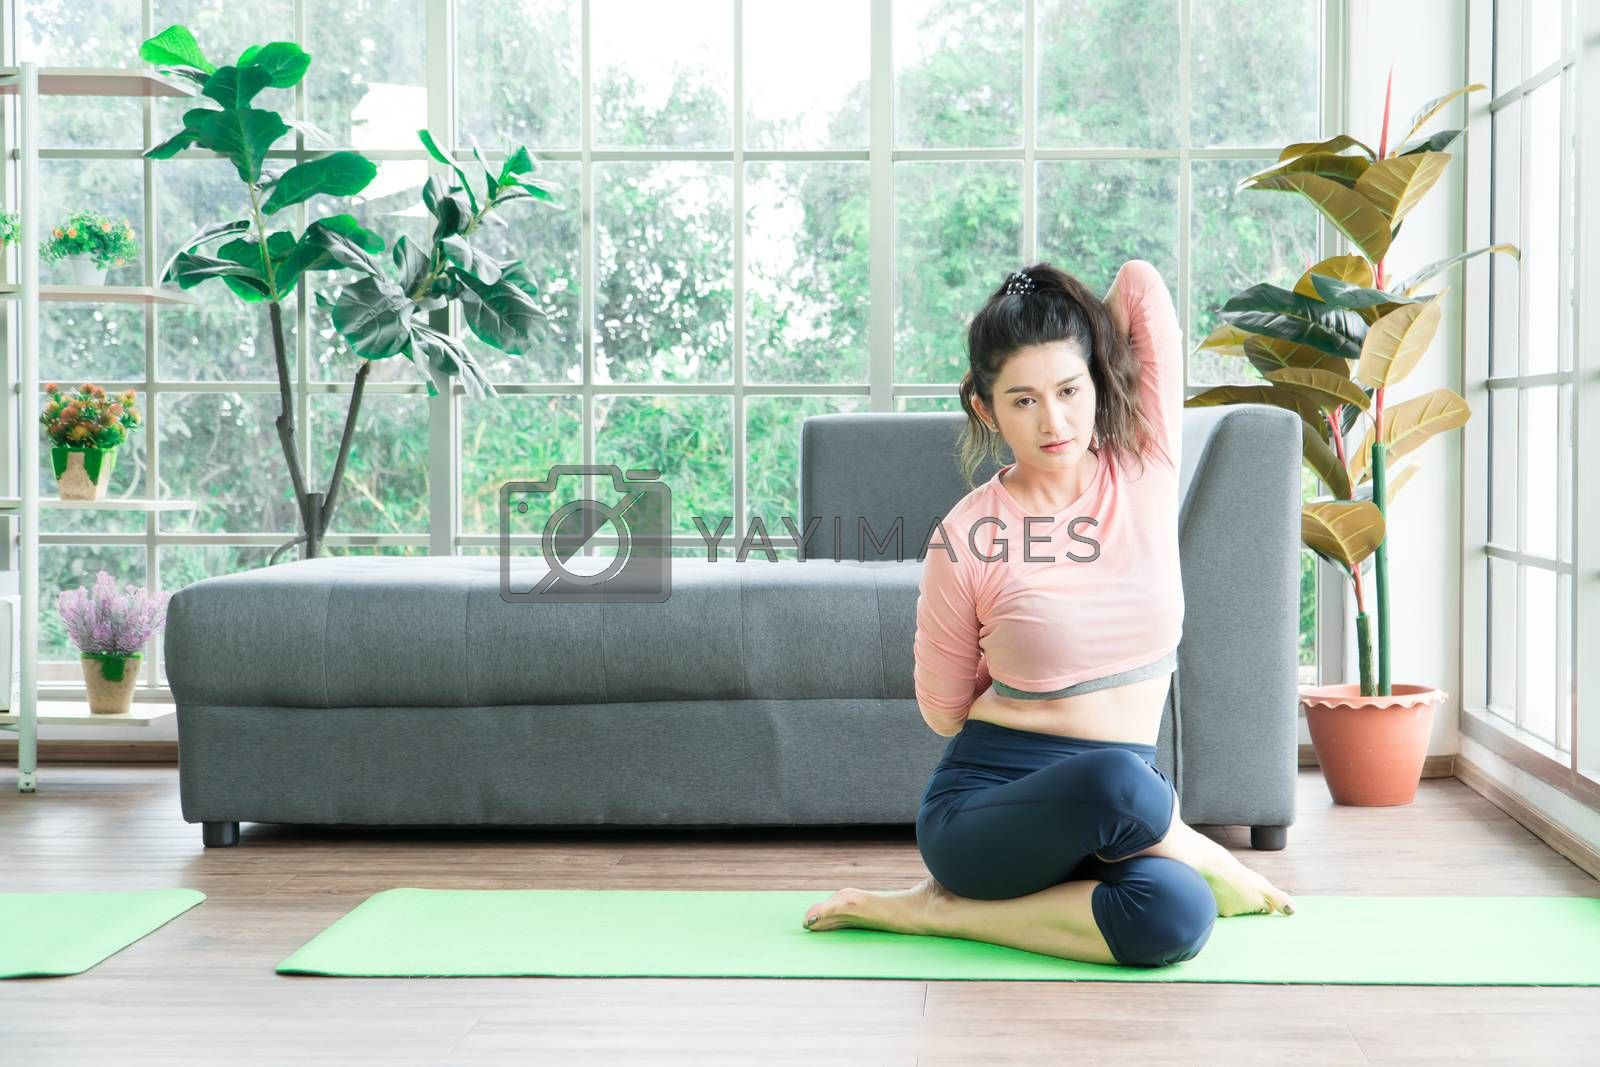 Attractive and healthy woman Asian are exercising Stretching with yoga postures at home helps to balance life. copy space is on the right side of the image For adding text